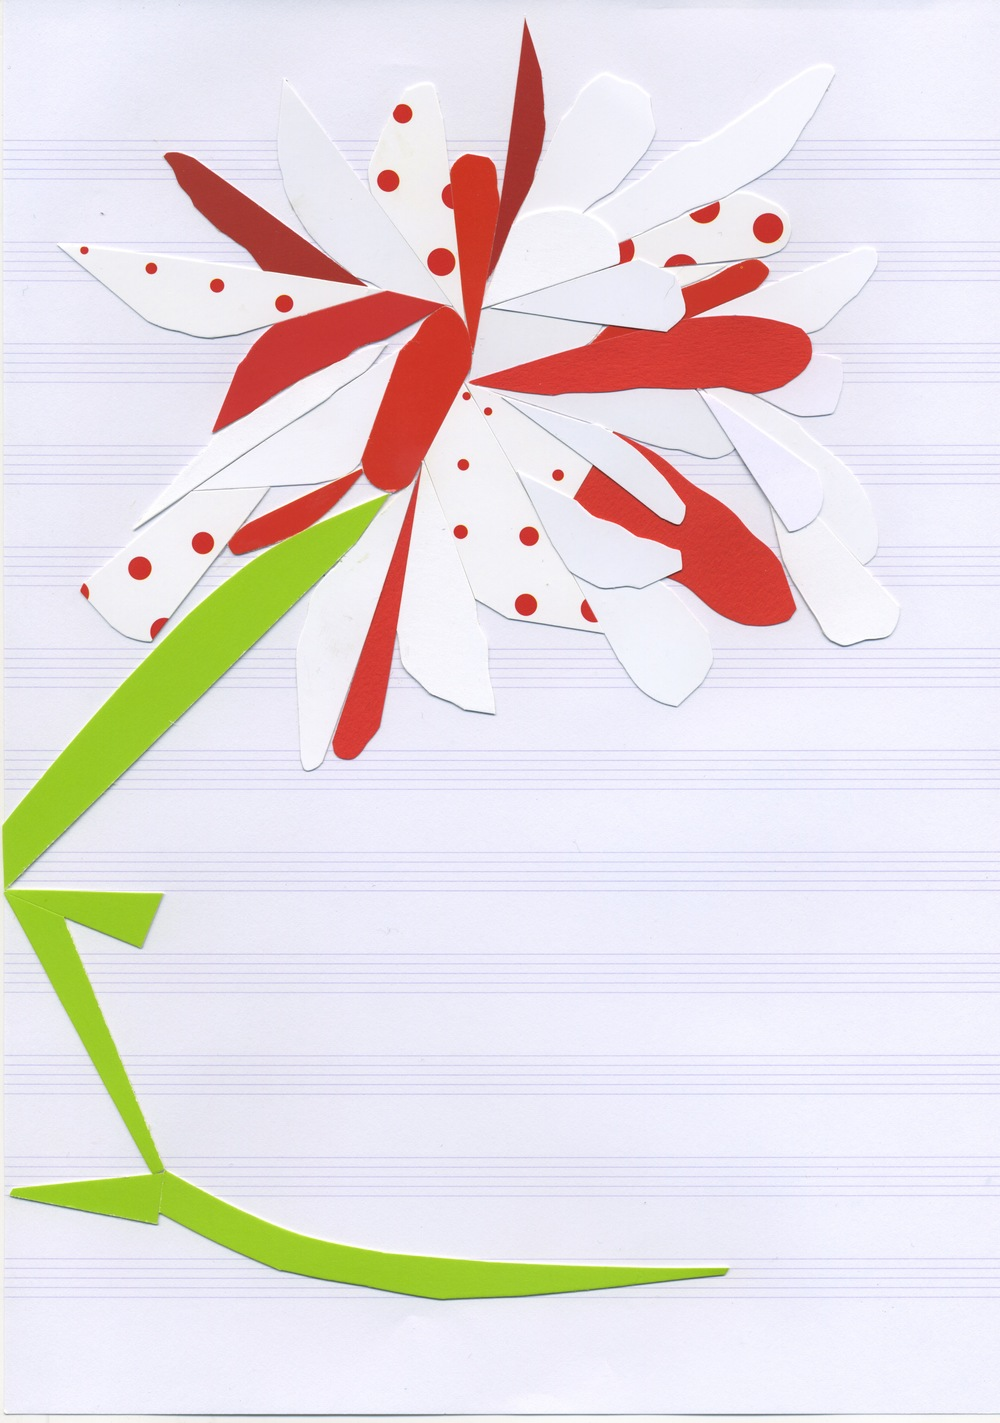 Autoportrait (as poppy), v. 1  Postcard stock on music paper 11.7 x 8.3 inches, 2011